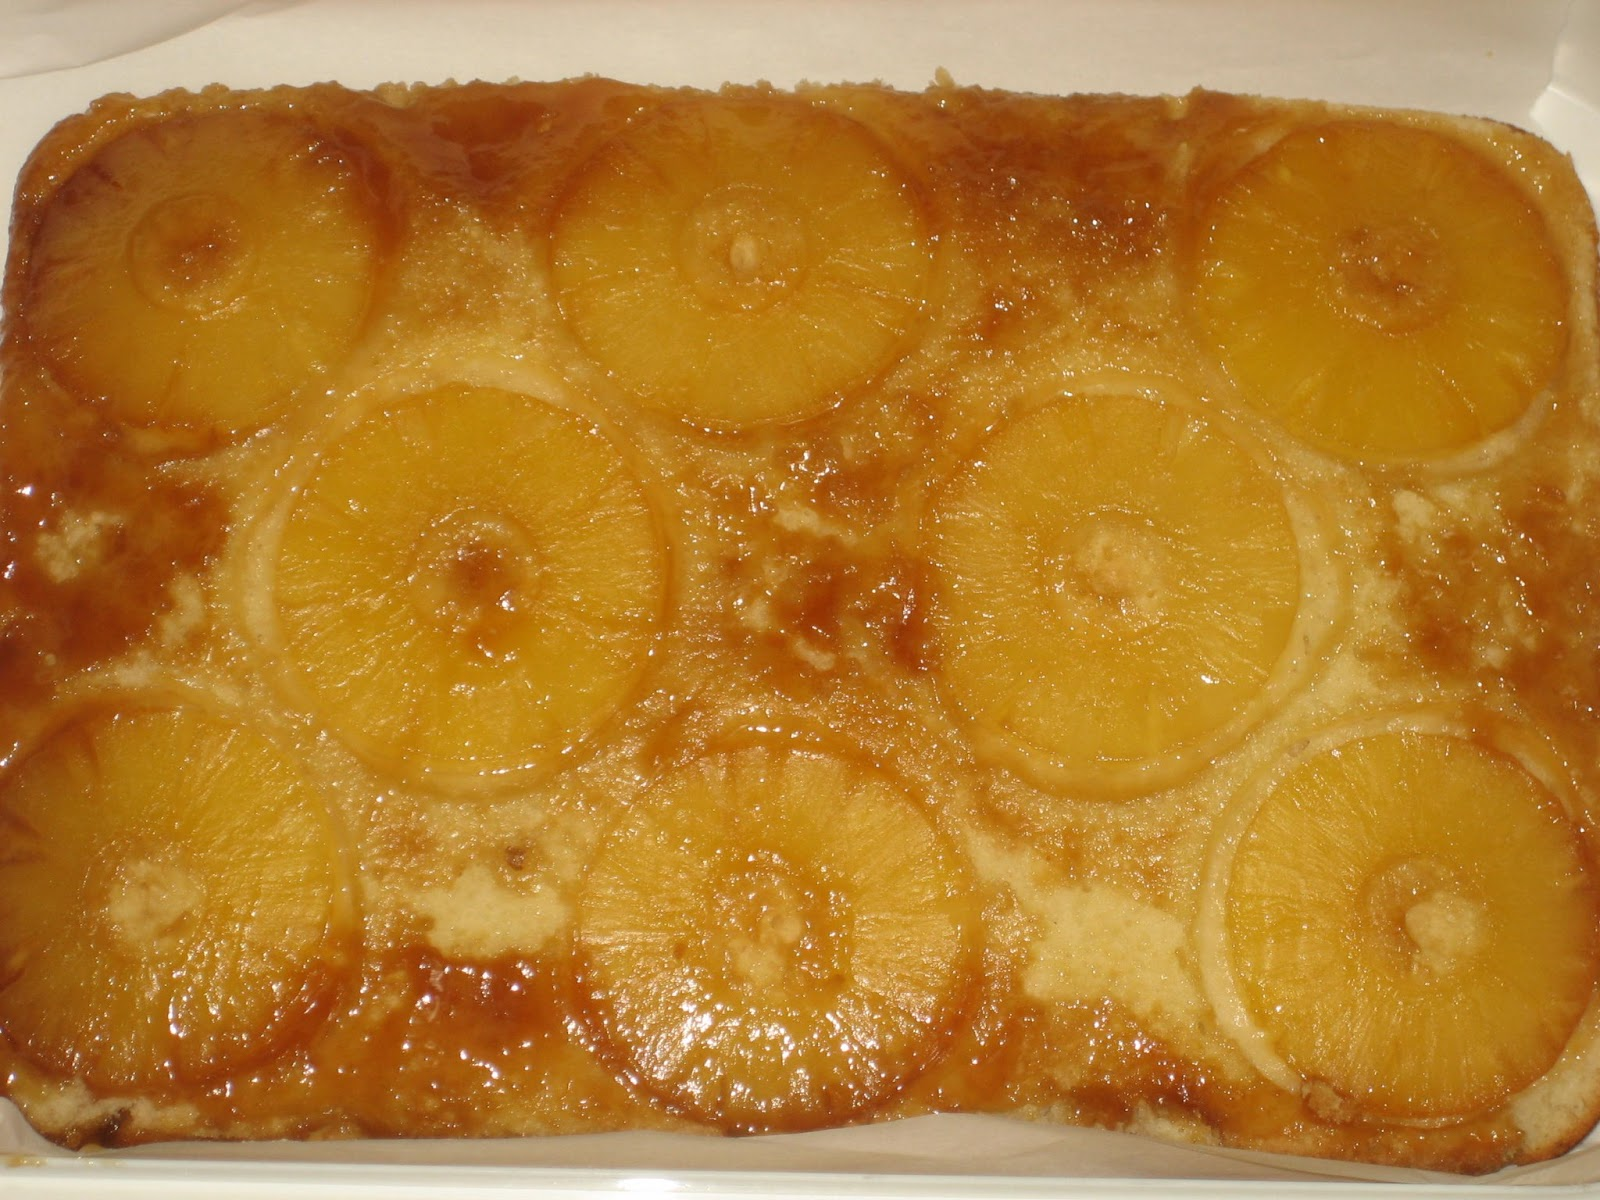 pineapple upside down cake pineapple upside down cake is one of those ...